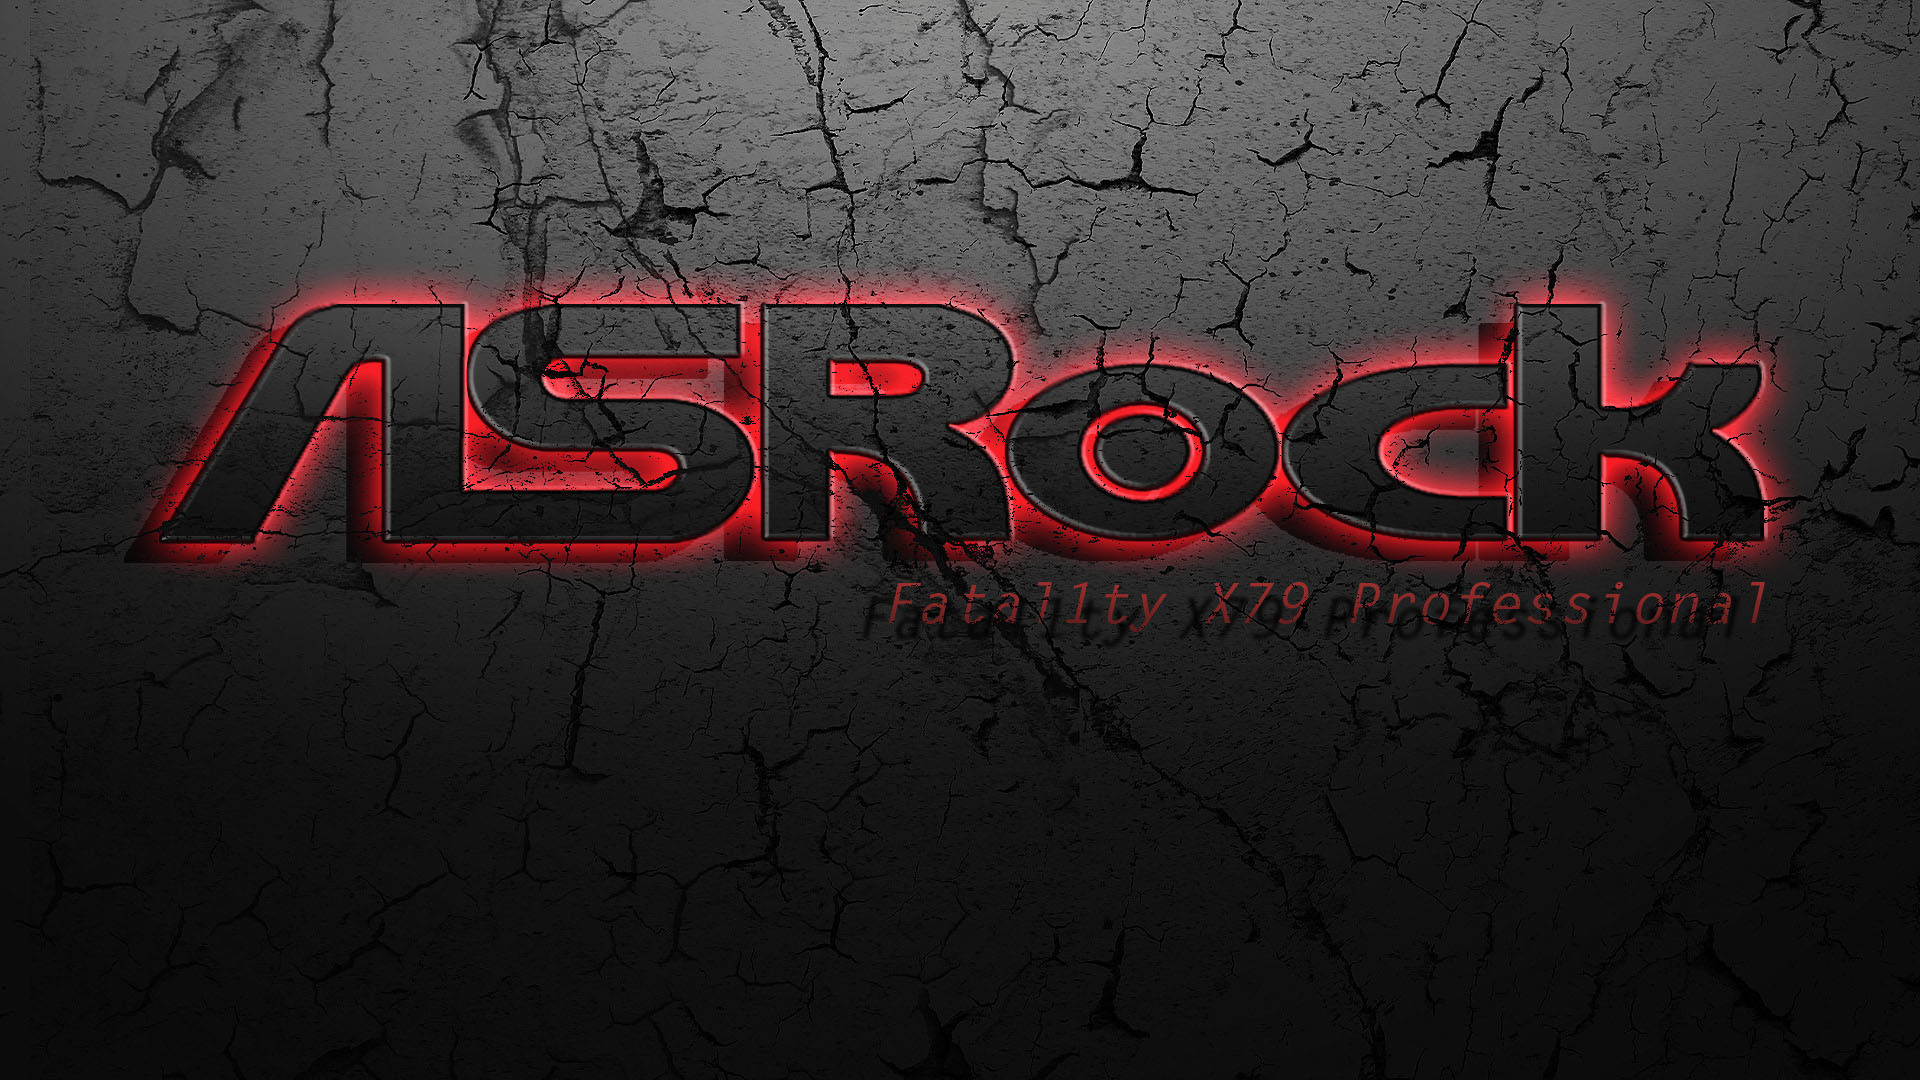 1920x1080 asrock wallpaper by grottslampan asrock wallpaper by grottslampan